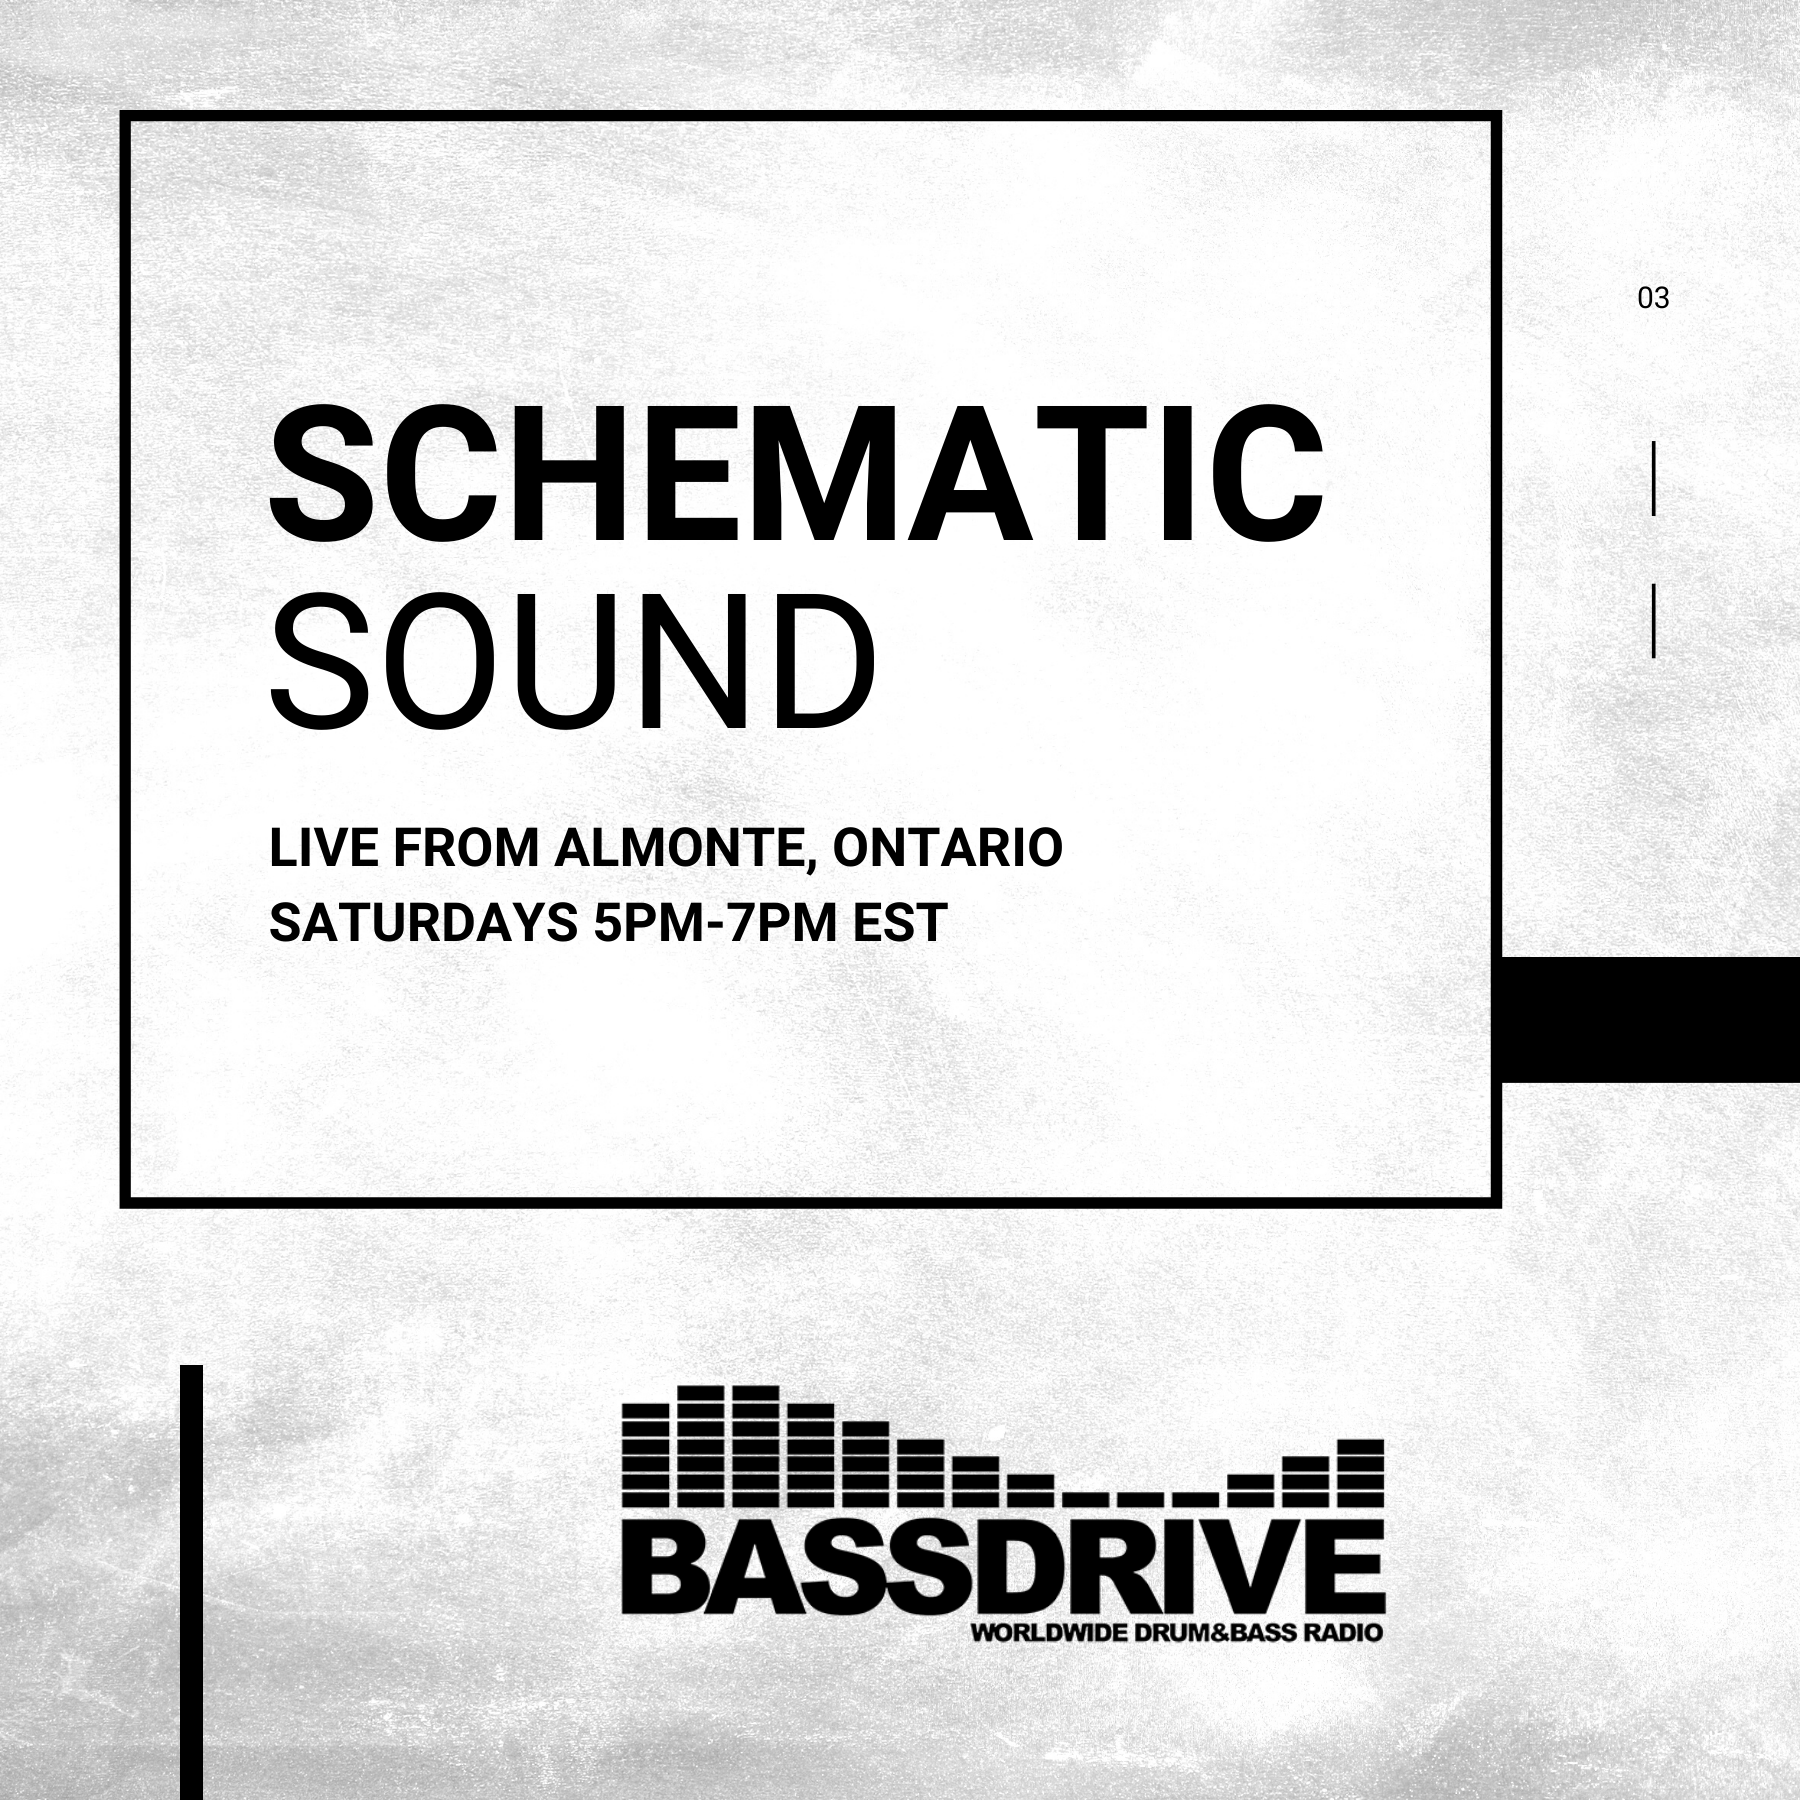 Schematic Sound LIVE on Bassdrive 03-06-2021